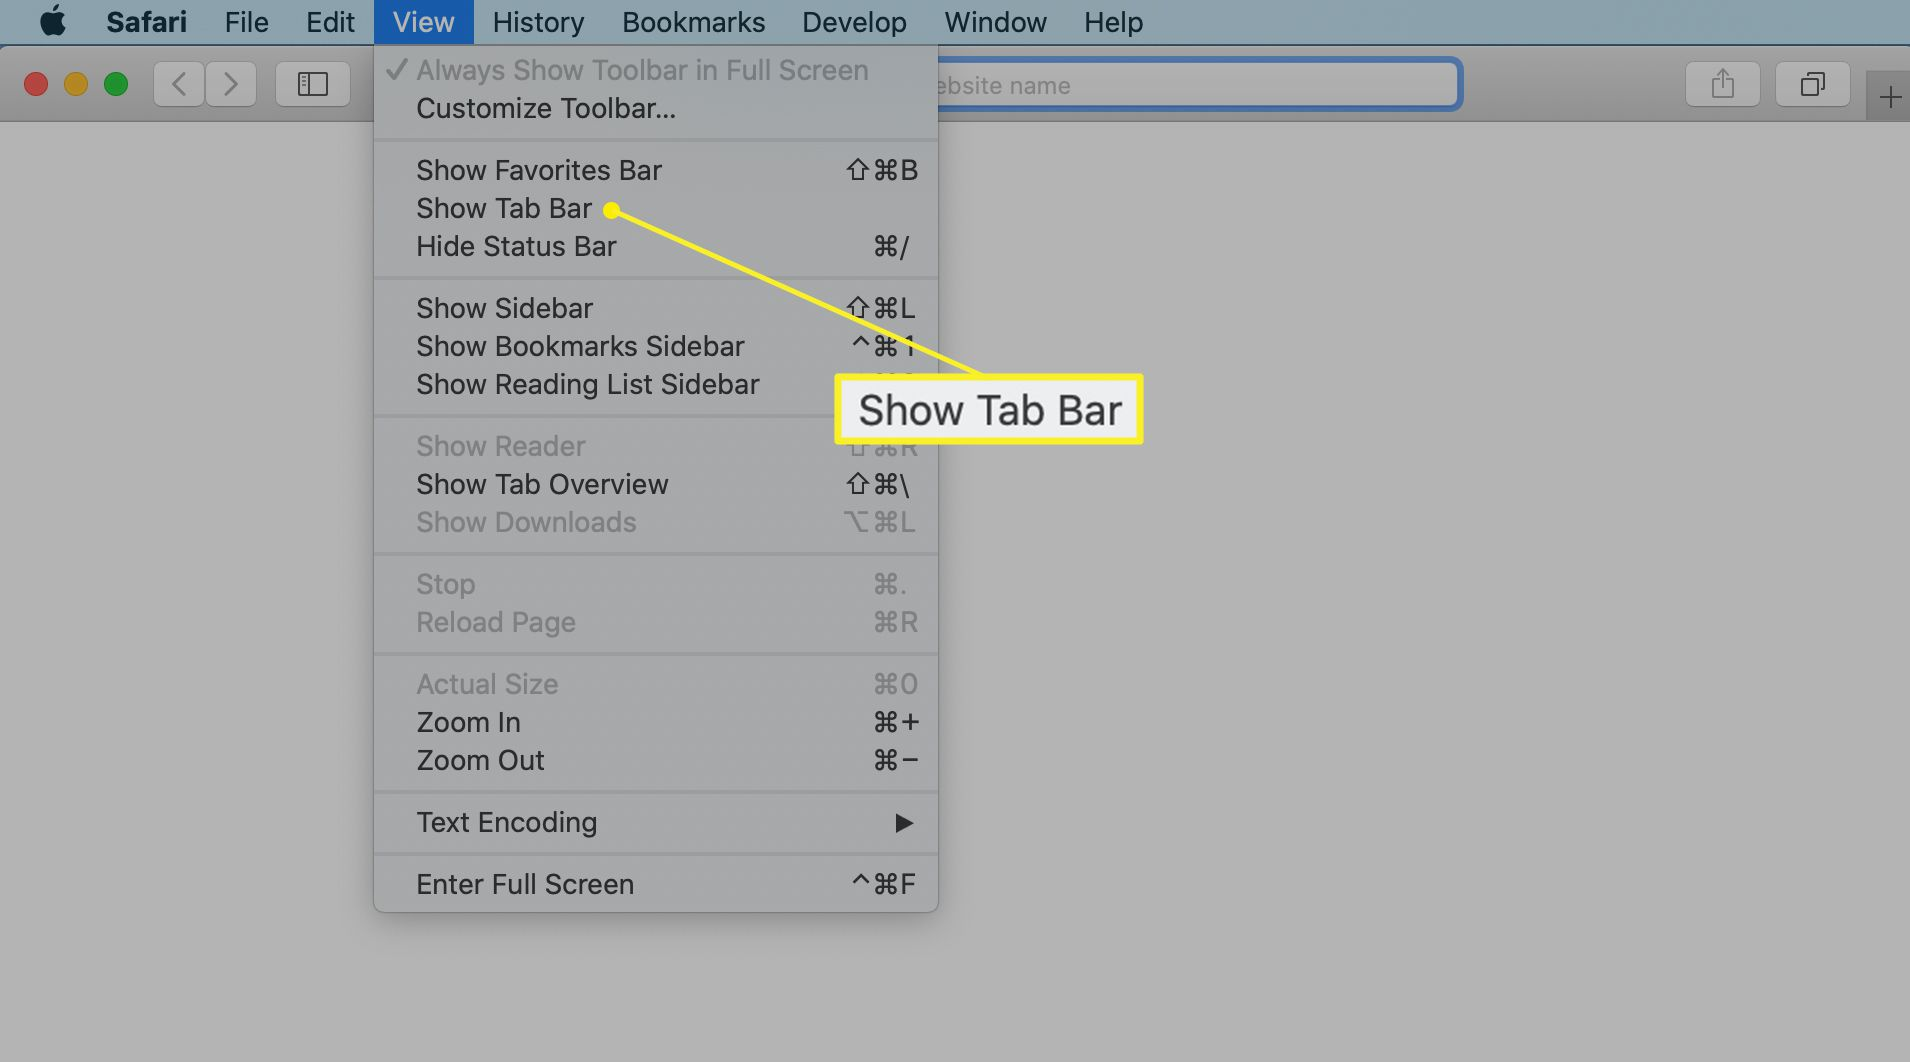 Safari on a Mac with the Show Tab Bar option under the View menu highlighted